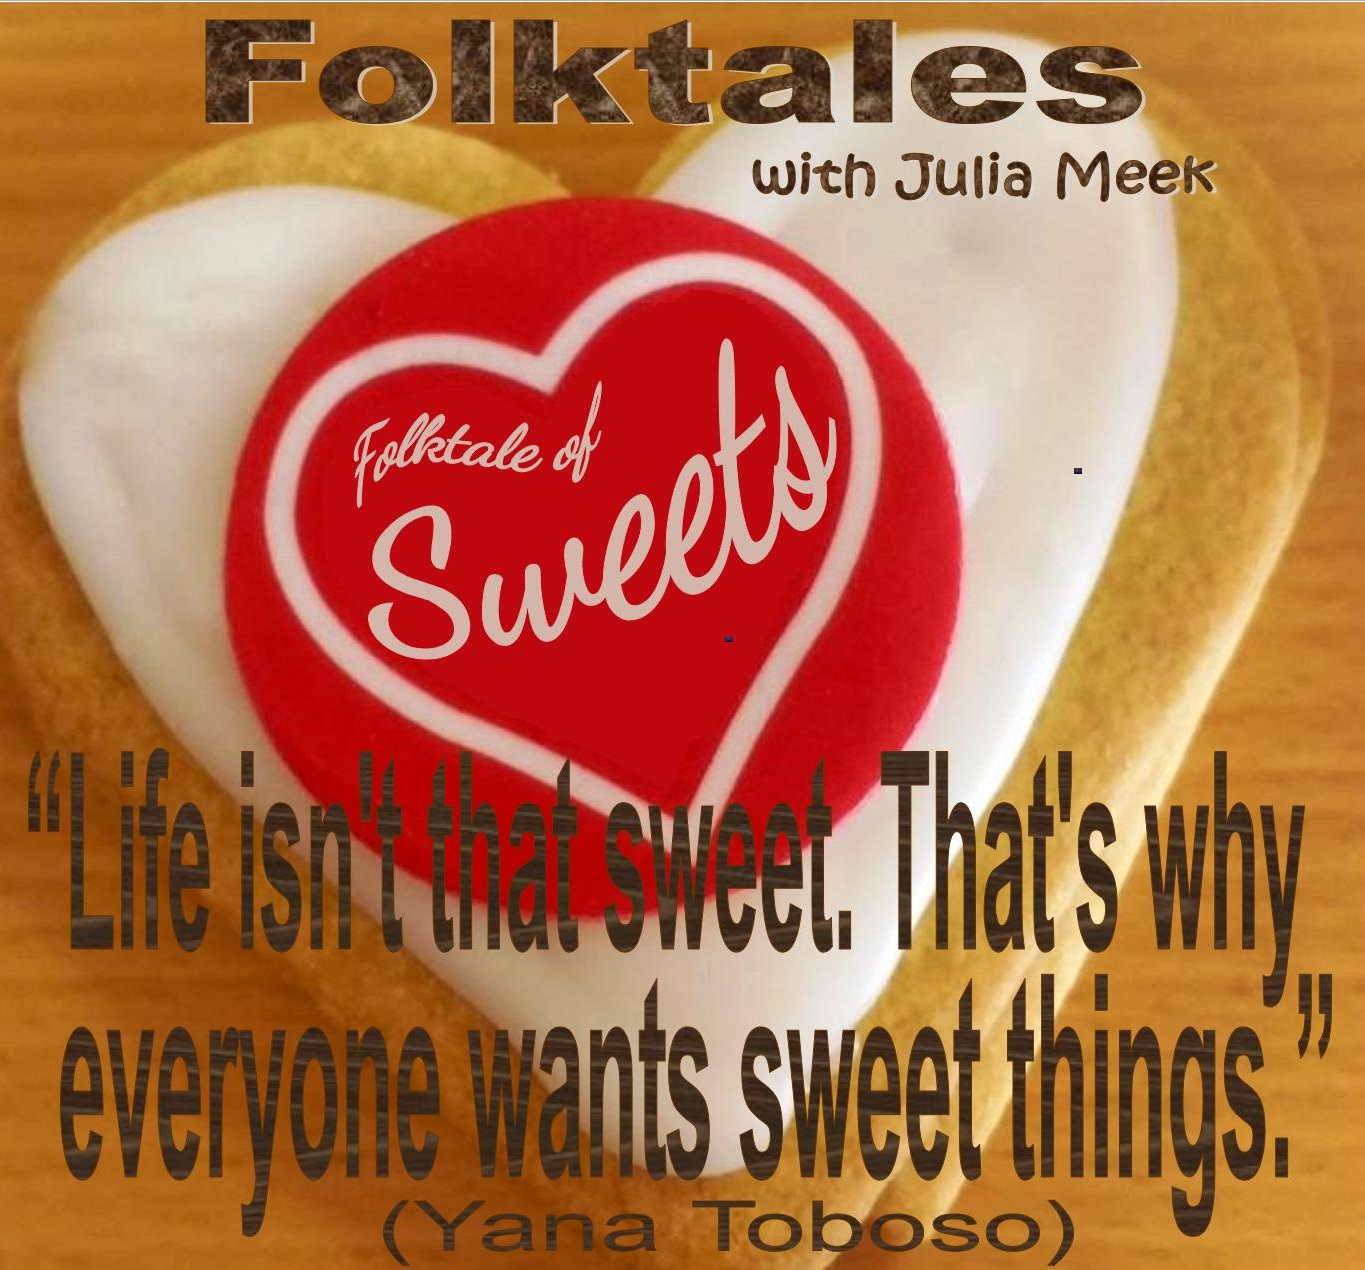 Caption: WBOI's Folktale of Sweets, Credit: Julia Meek